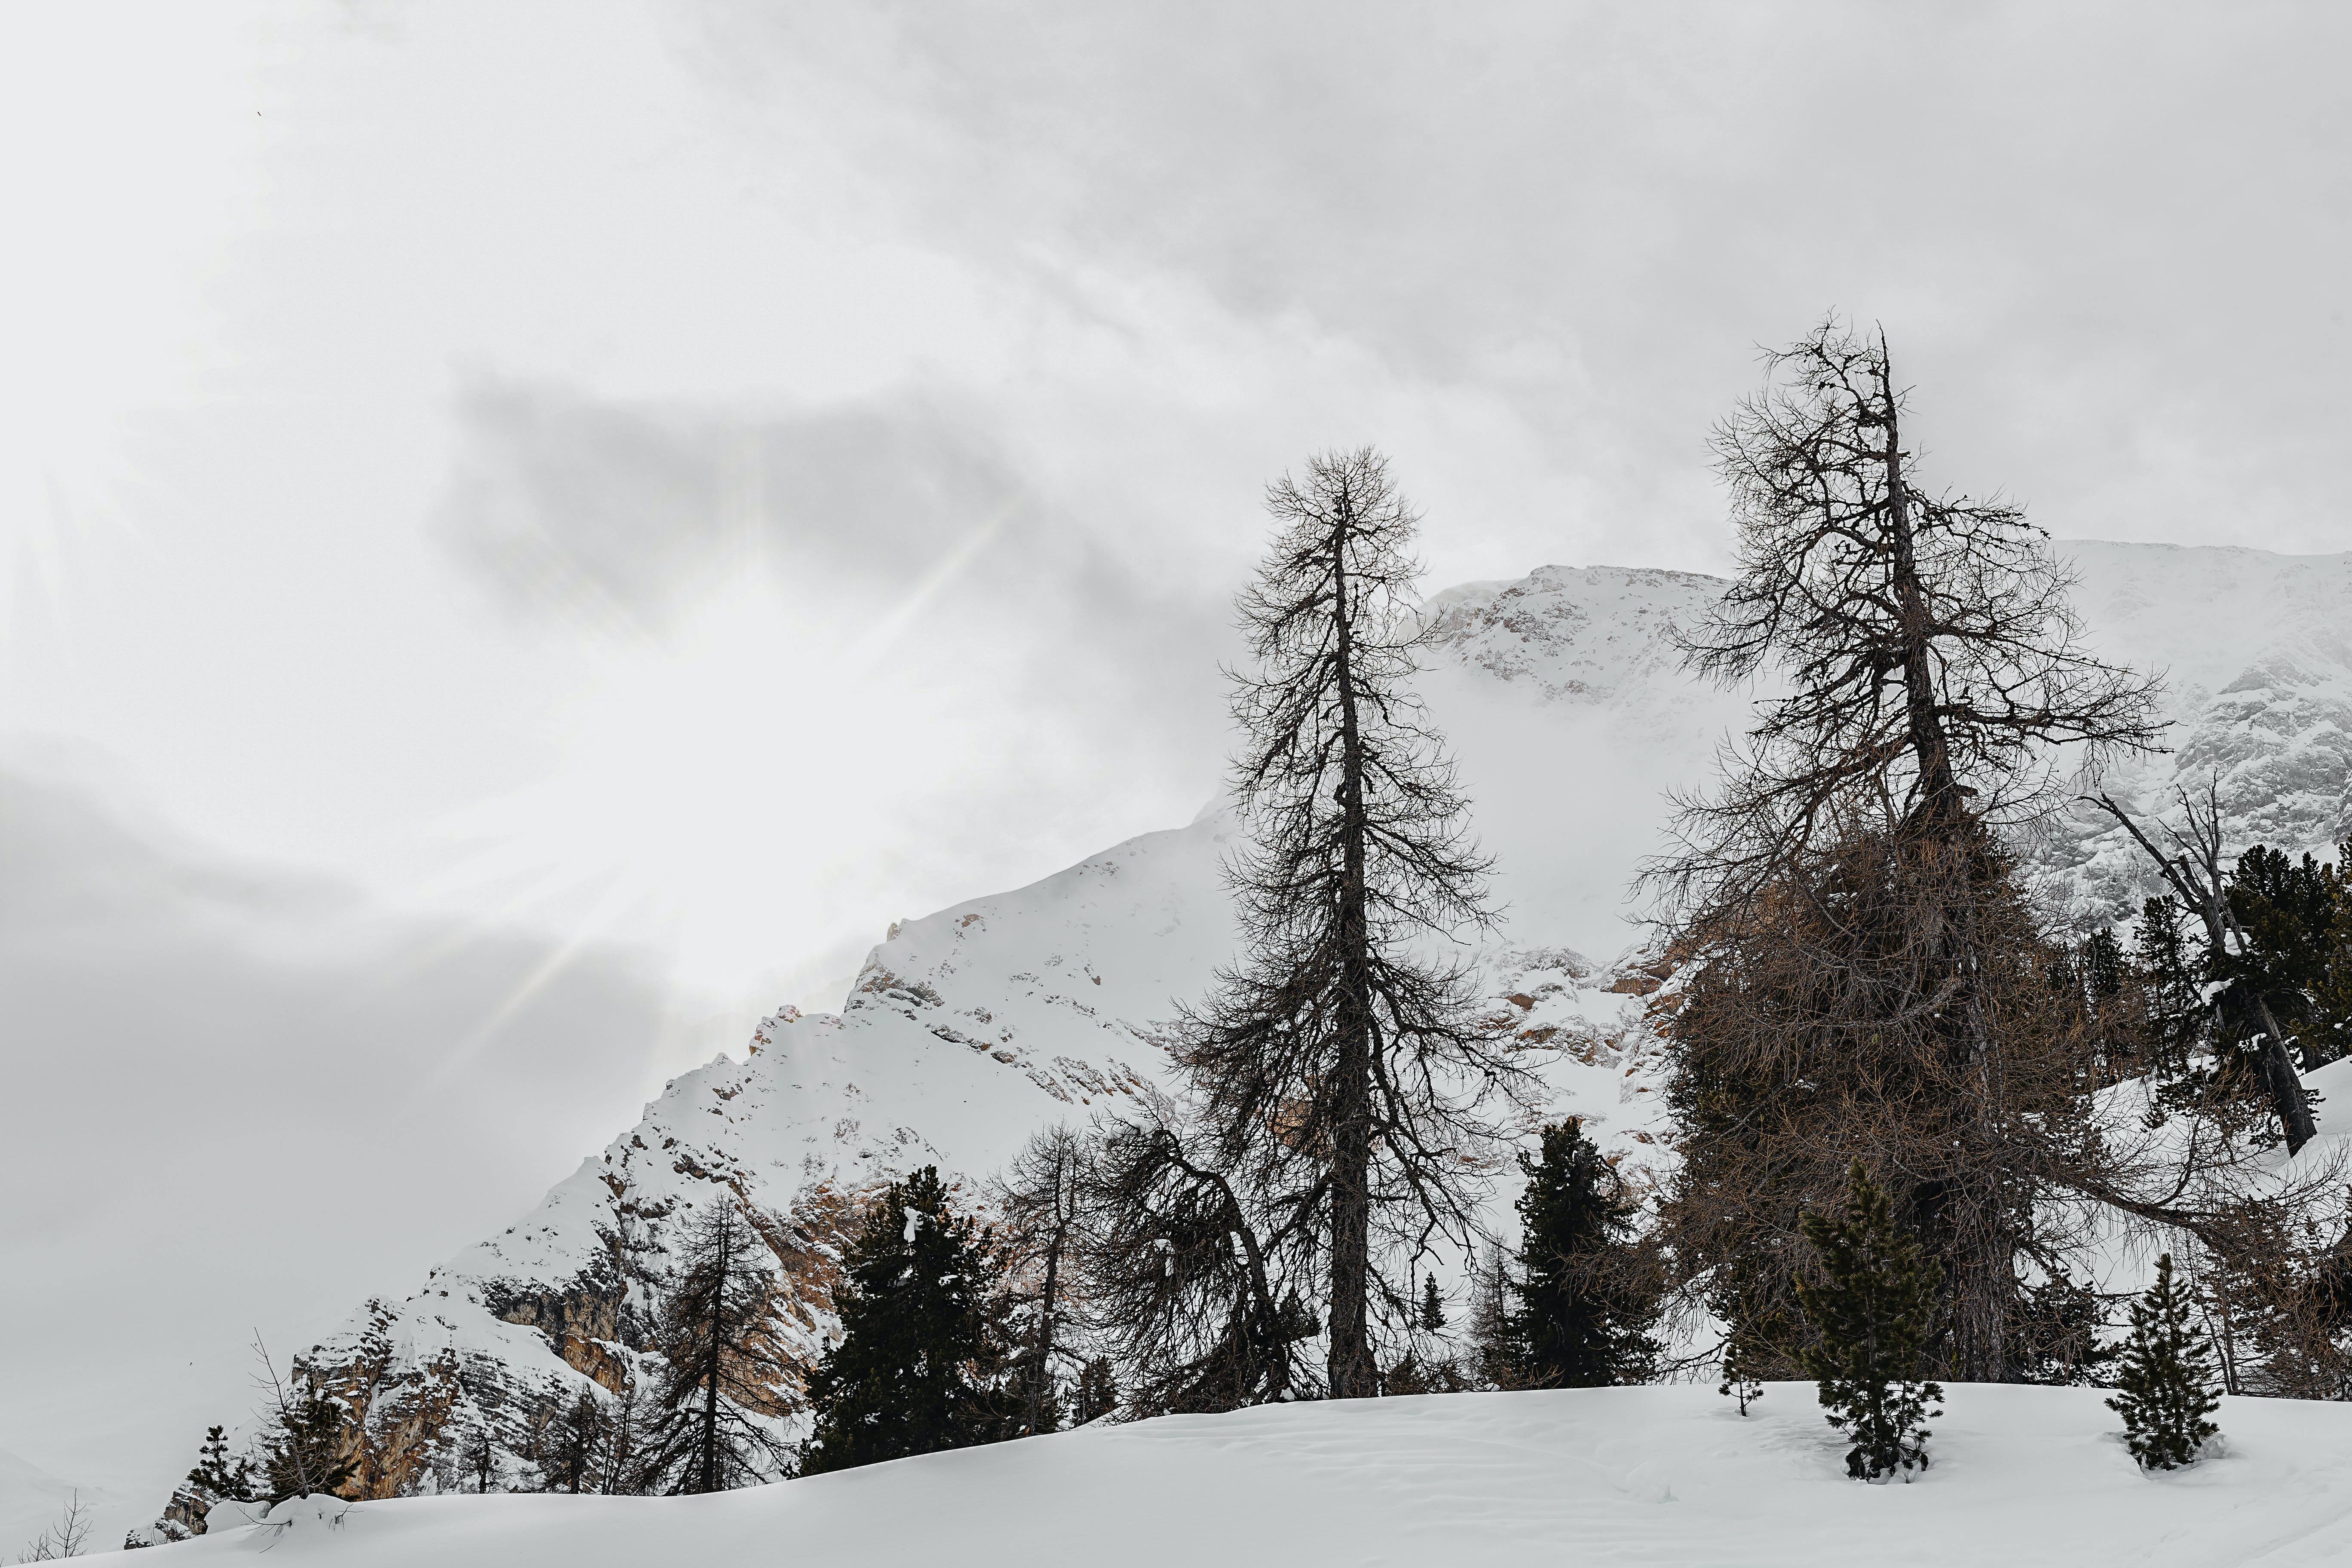 Black Withered Trees Across Snow-capped Mountain